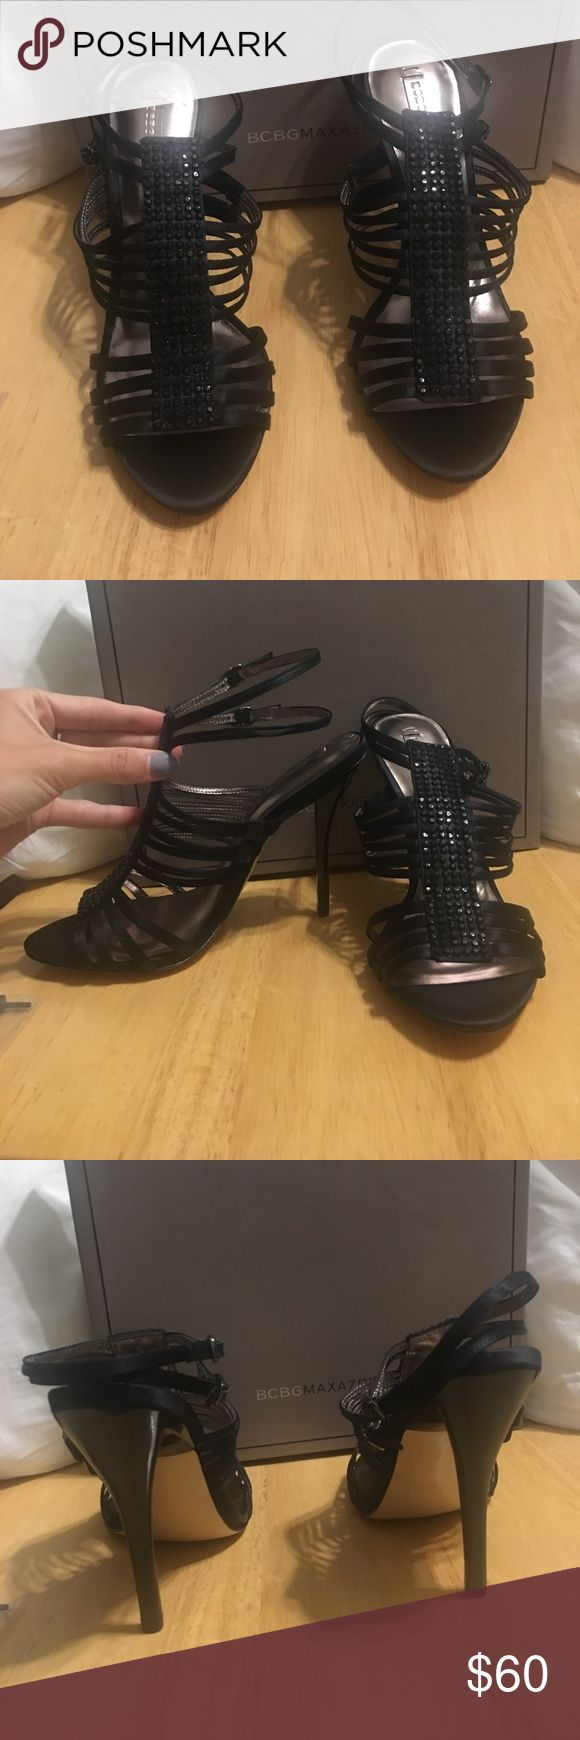 BCBG MAXAZRIA Black Open Toed strap heels 6.5 New with box Black open toed strap heels with rhinestone front. Come with 2 extra heel stoppers in case one breaks. Size 6.5. 4 in heel BCBGMaxAzria Shoes Heels